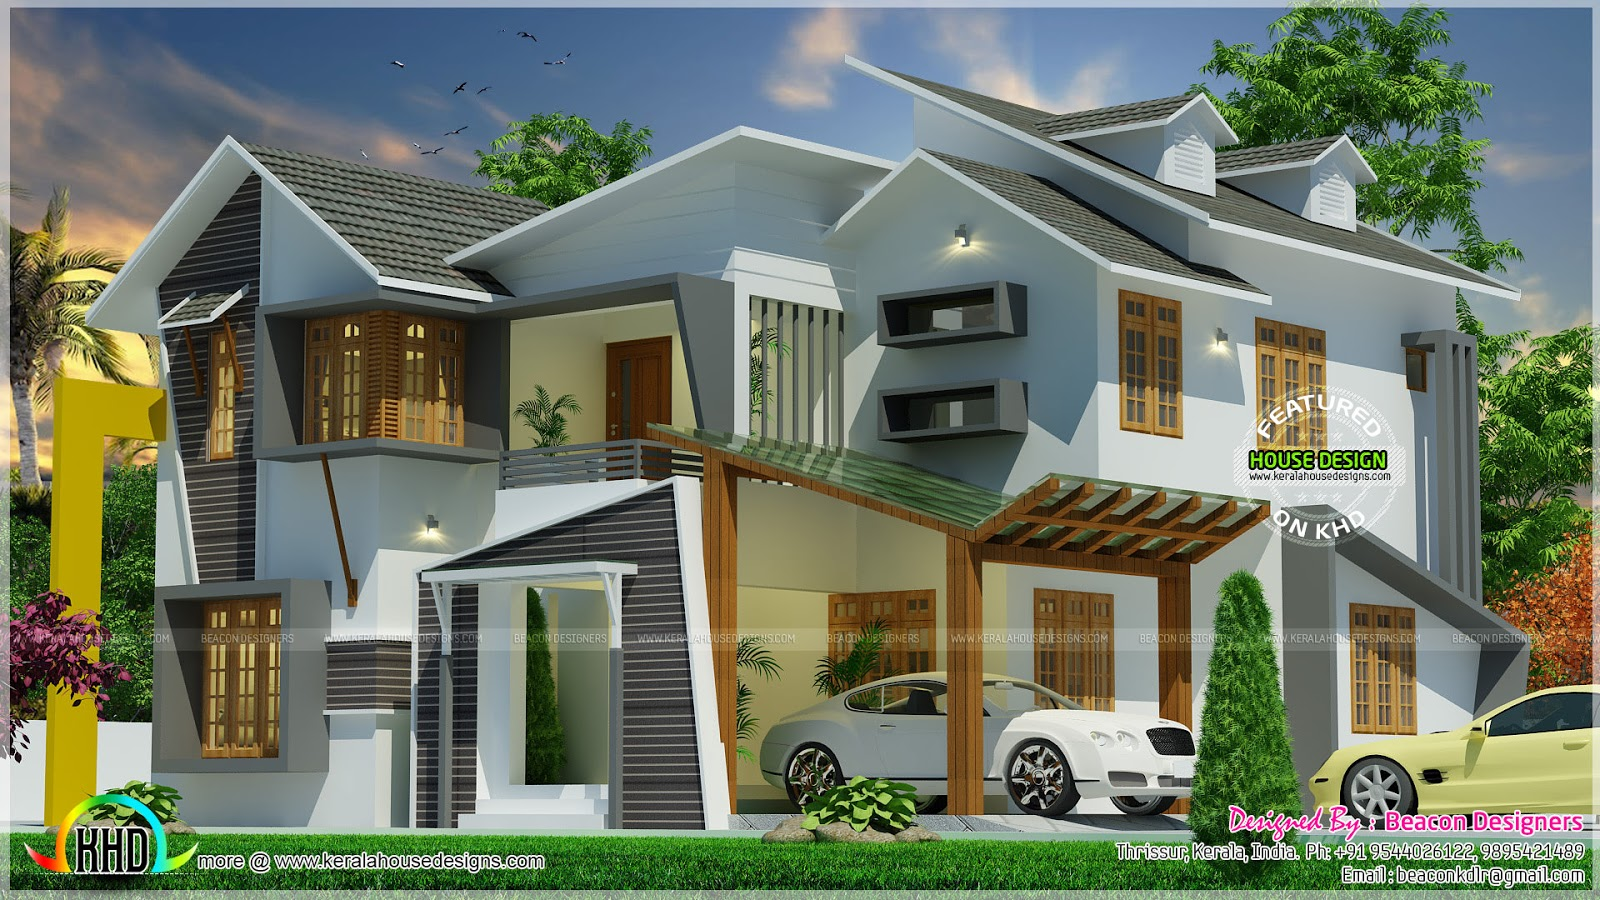 Ultra modern home with dormer windows kerala home design for Super modern house design